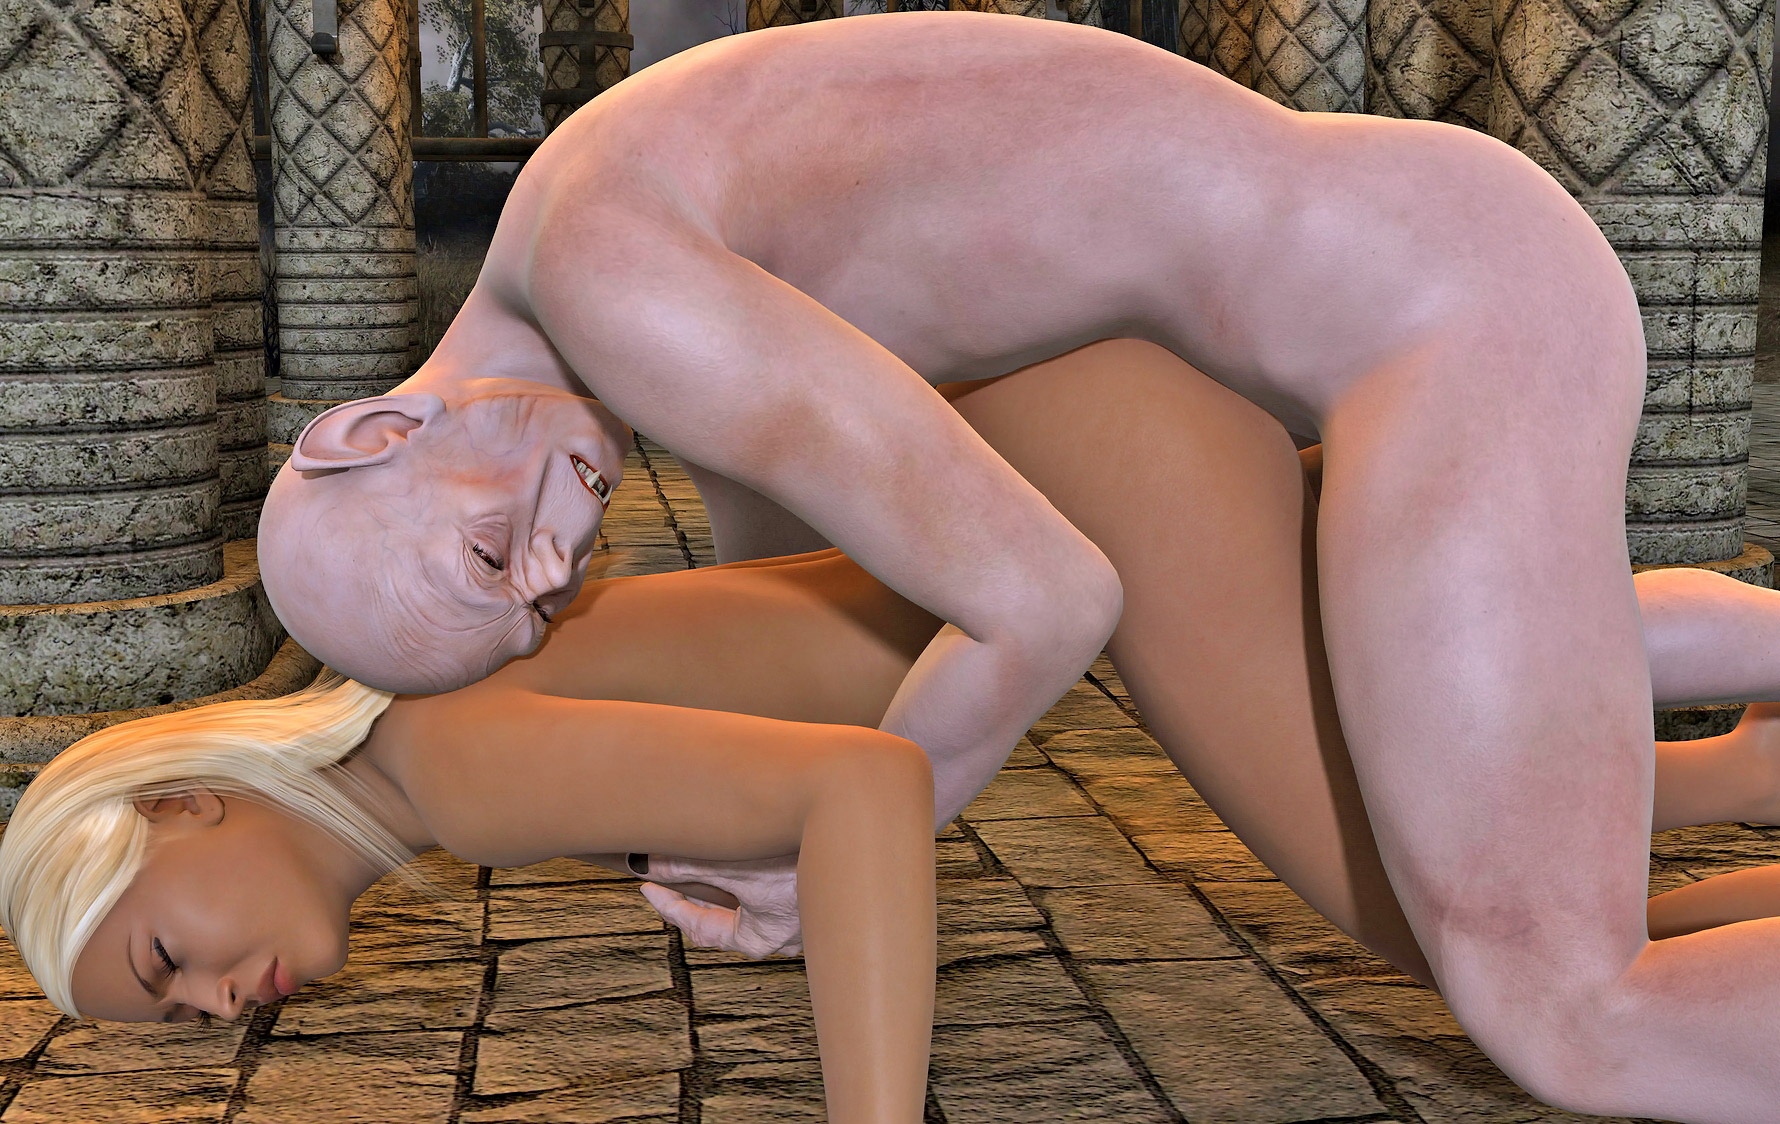 Great 3d monster porn collection video erotic virgin